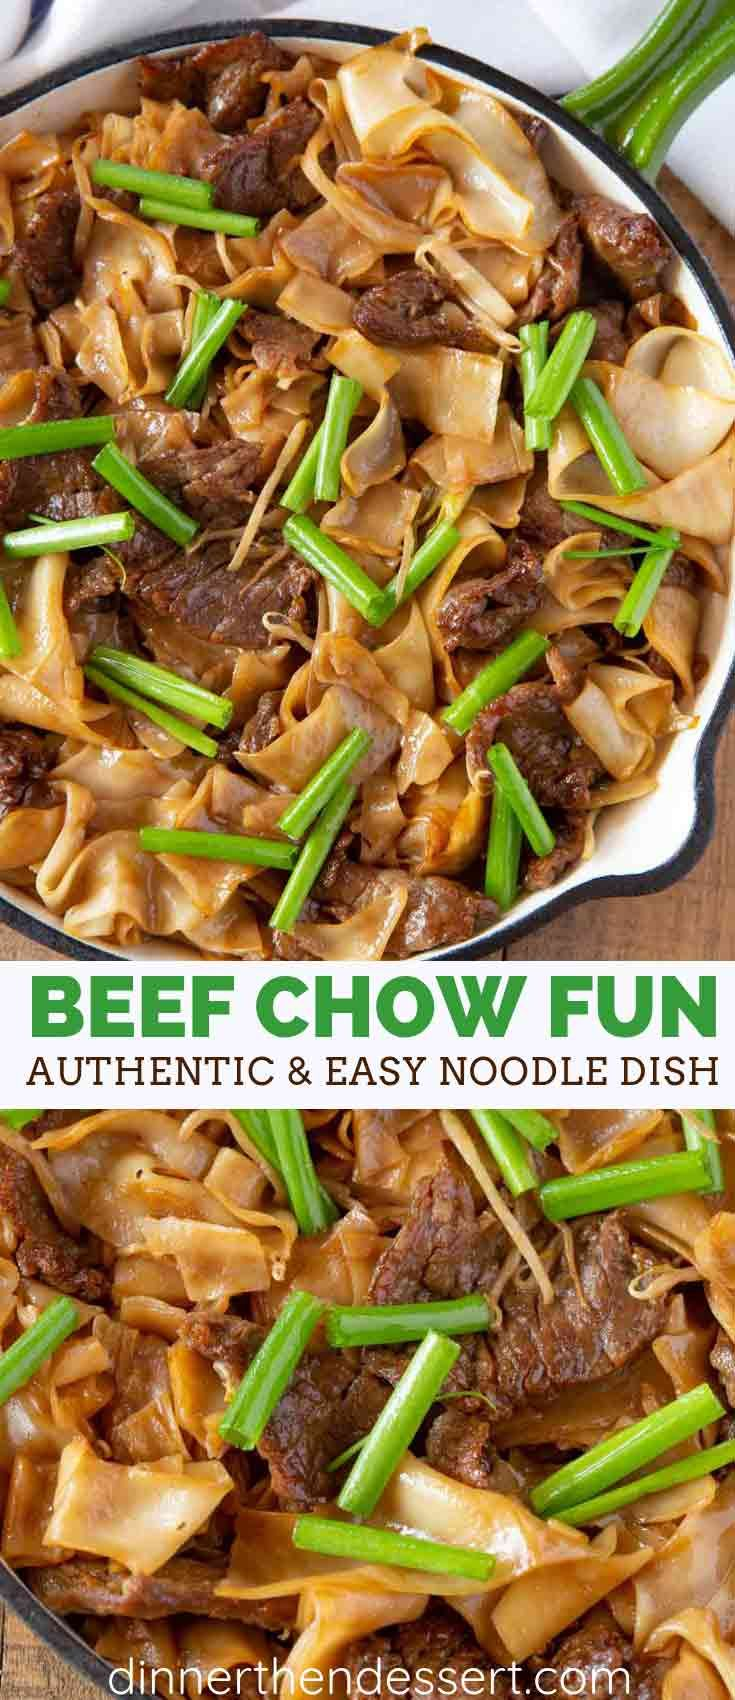 Beef Chow Fun is a popular Chinese (Cantonese) noodle dish with extra wide rice noodles, sweetened sesame soy sauce and green onions with thinly sliced beef. #chinese #chinesefood #beef #steak #noodles #pasta #takeout #dinner #dinnerthendessert #beefsteakrecipe